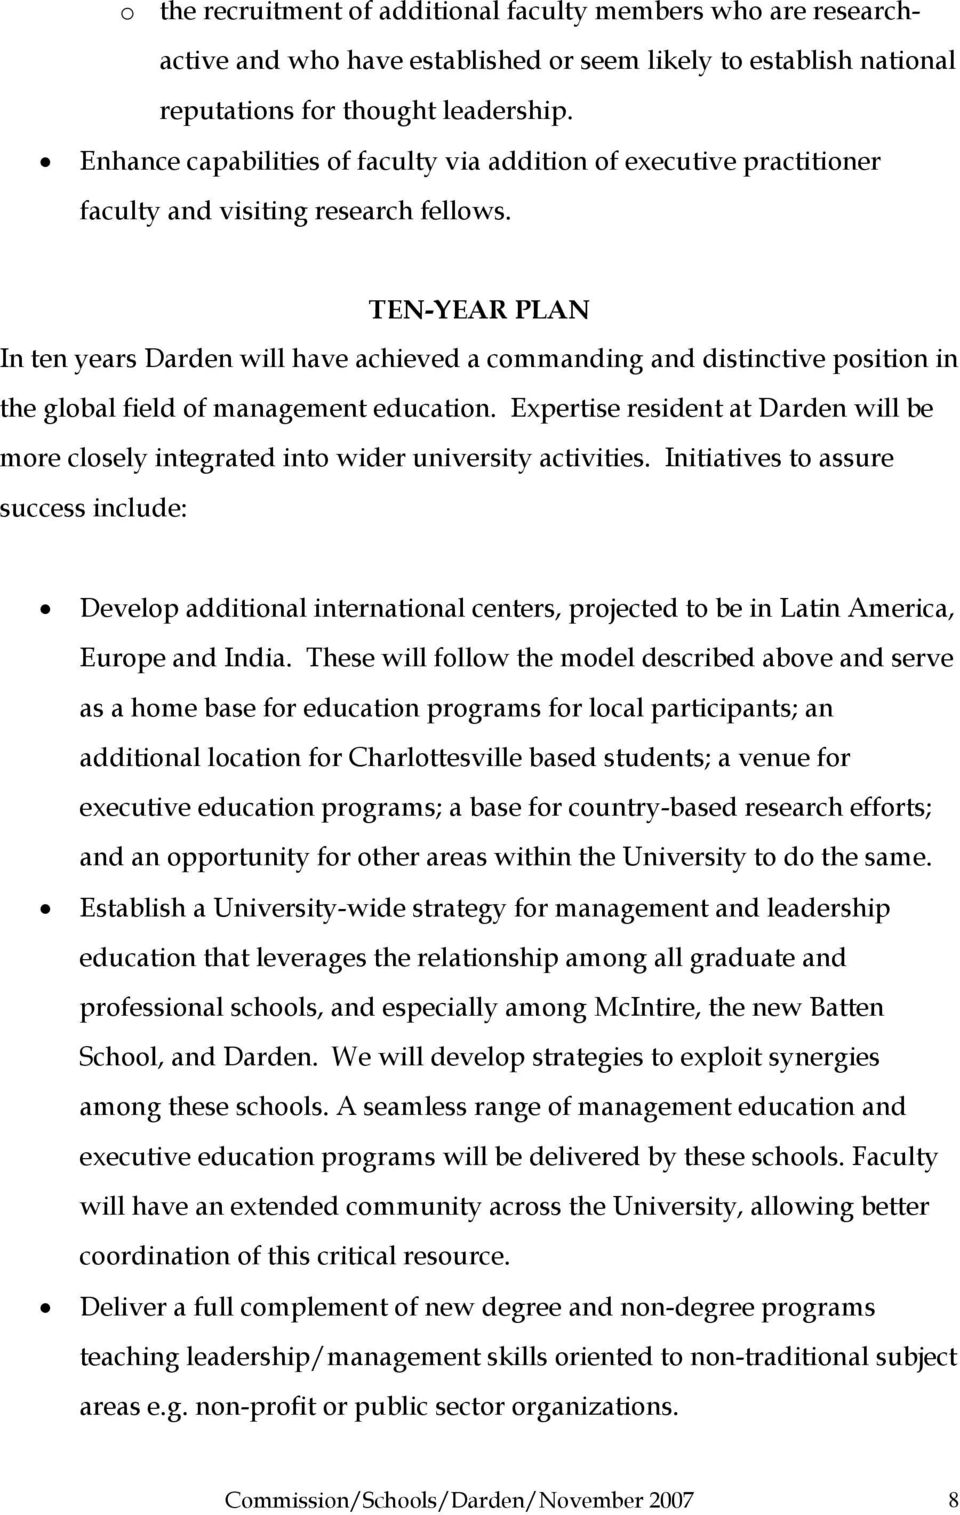 TEN-YEAR PLAN In ten years Darden will have achieved a commanding and distinctive position in the global field of management education.